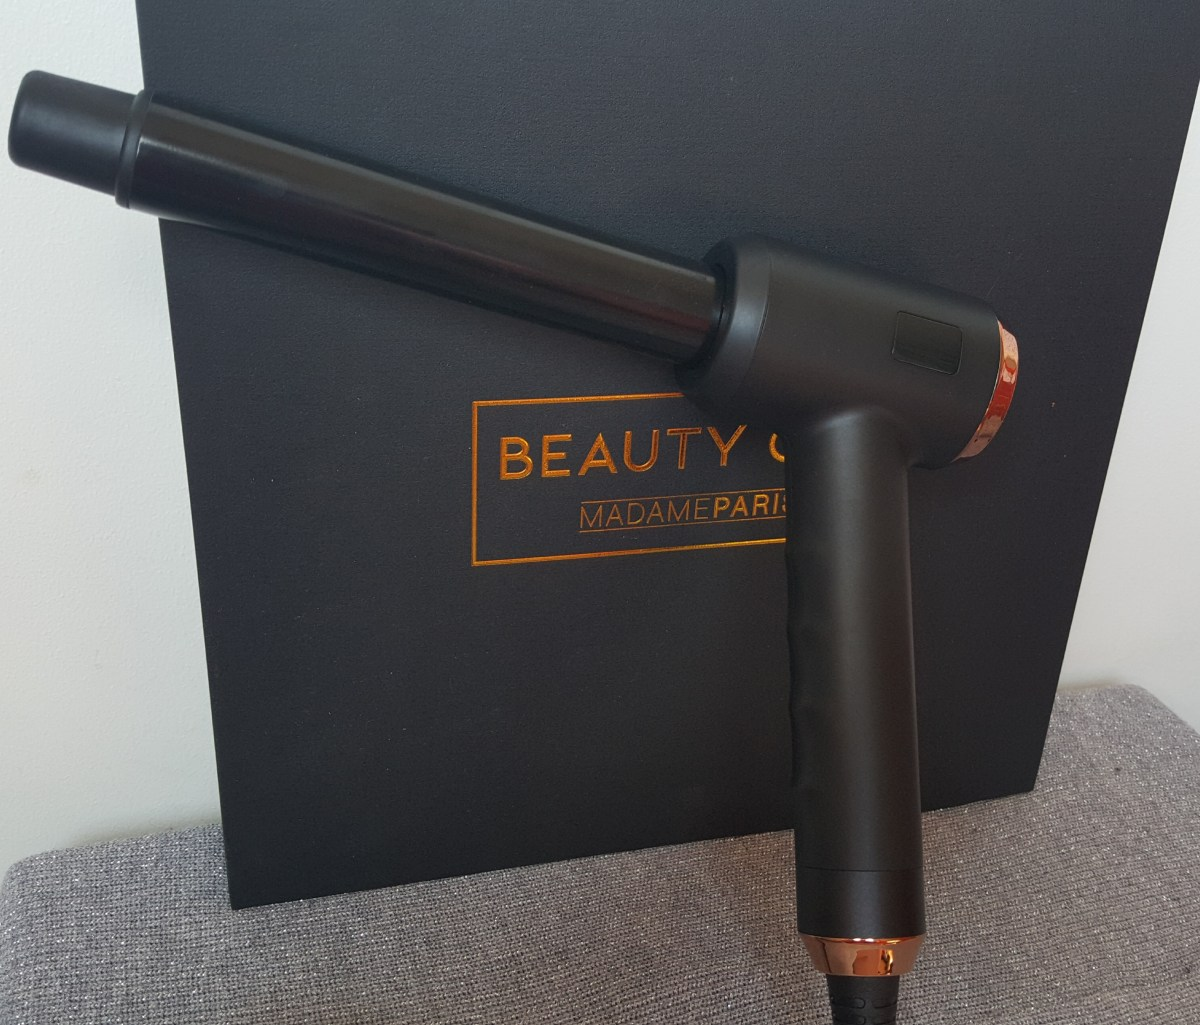 Le boucleur Beauty Gun de Madame Paris